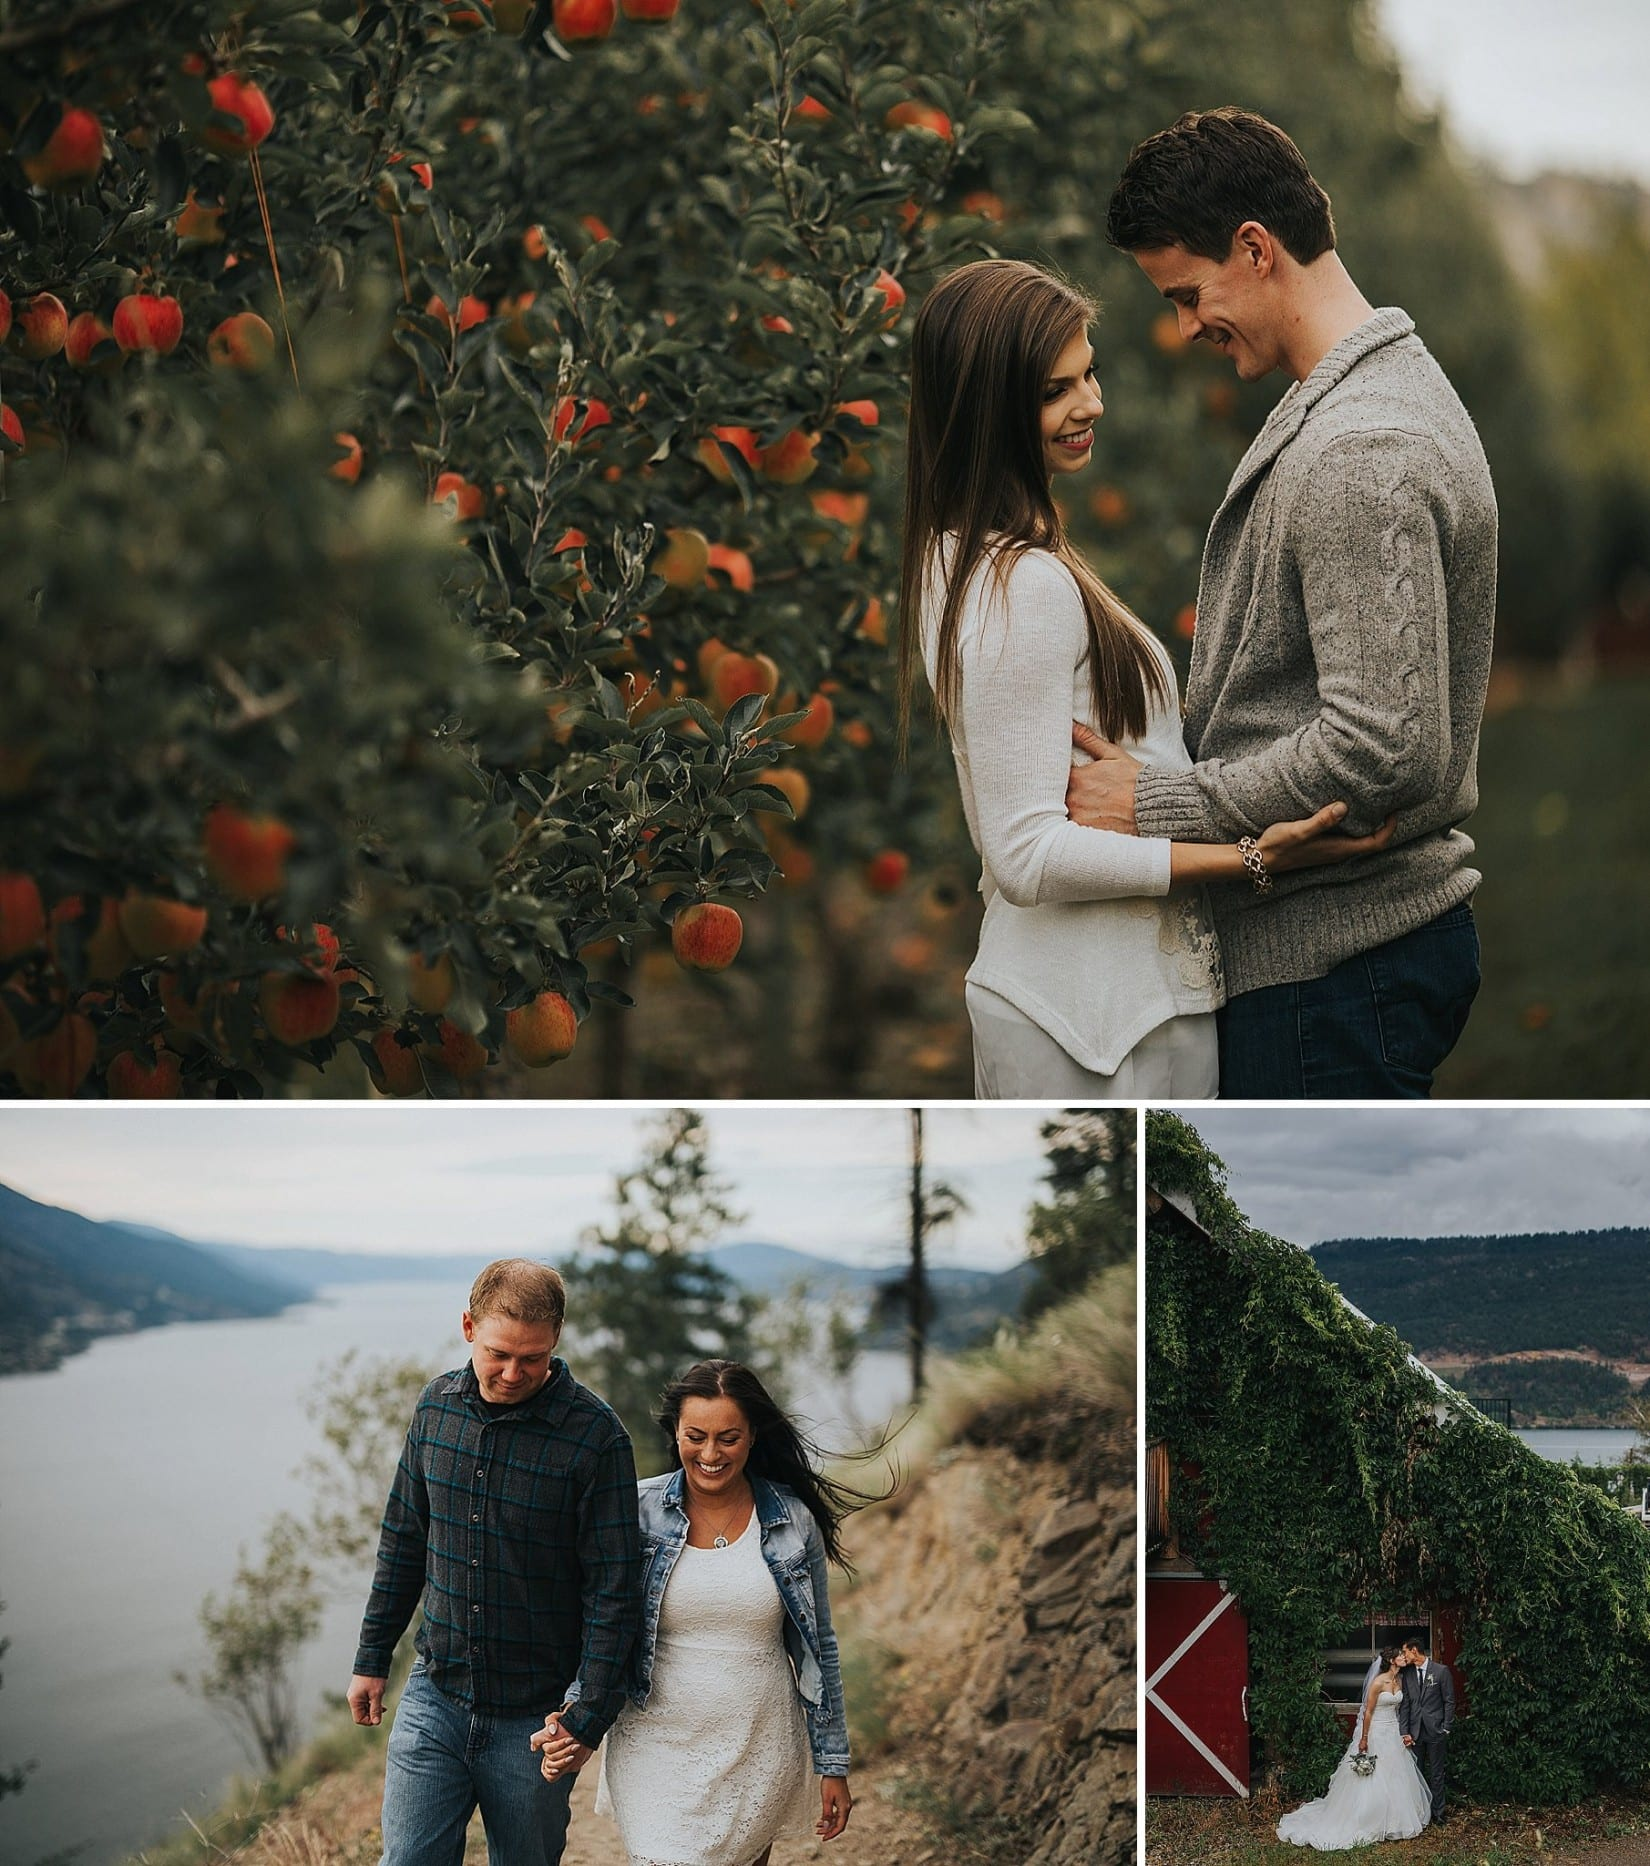 Looking for Kelowna's Best Wedding Photographer? Barnett Photography are married couple photographing weddings here in the beautiful Okanagan! Winners of the Kelowna Now Best of Kelowna two years in a row!